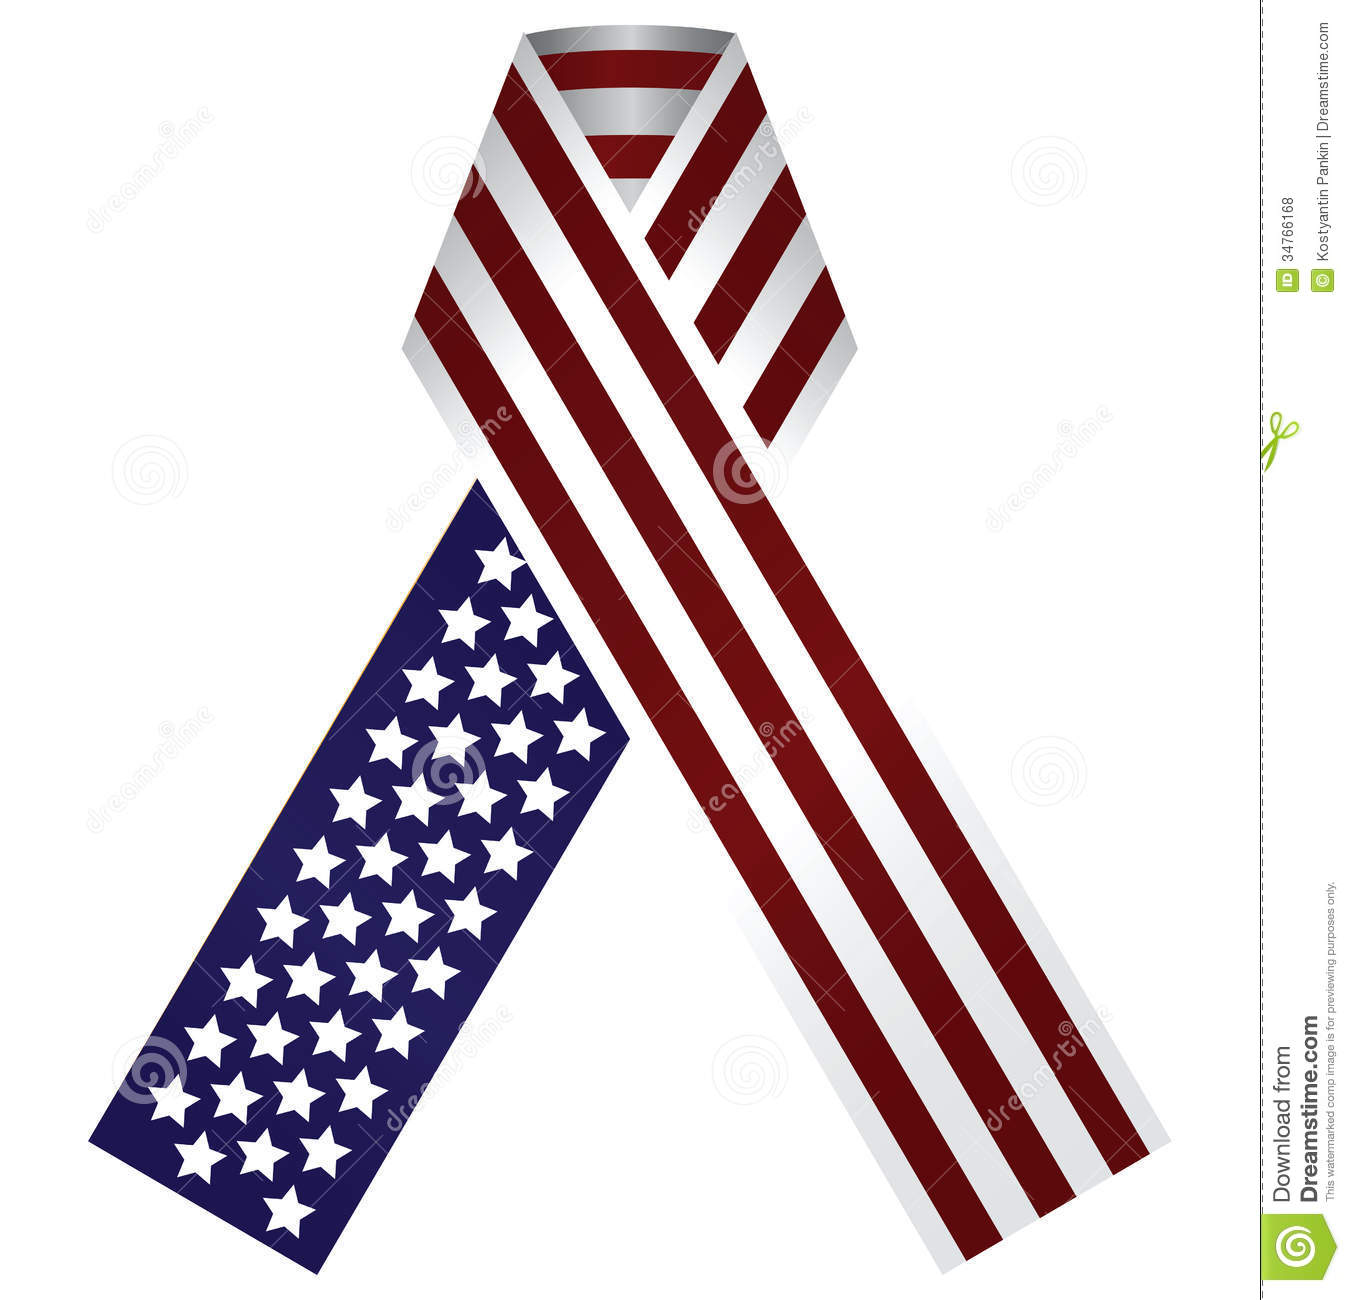 Memorial day ribbon clipart banner royalty free stock Memorial day ribbon clipart - ClipartFest banner royalty free stock